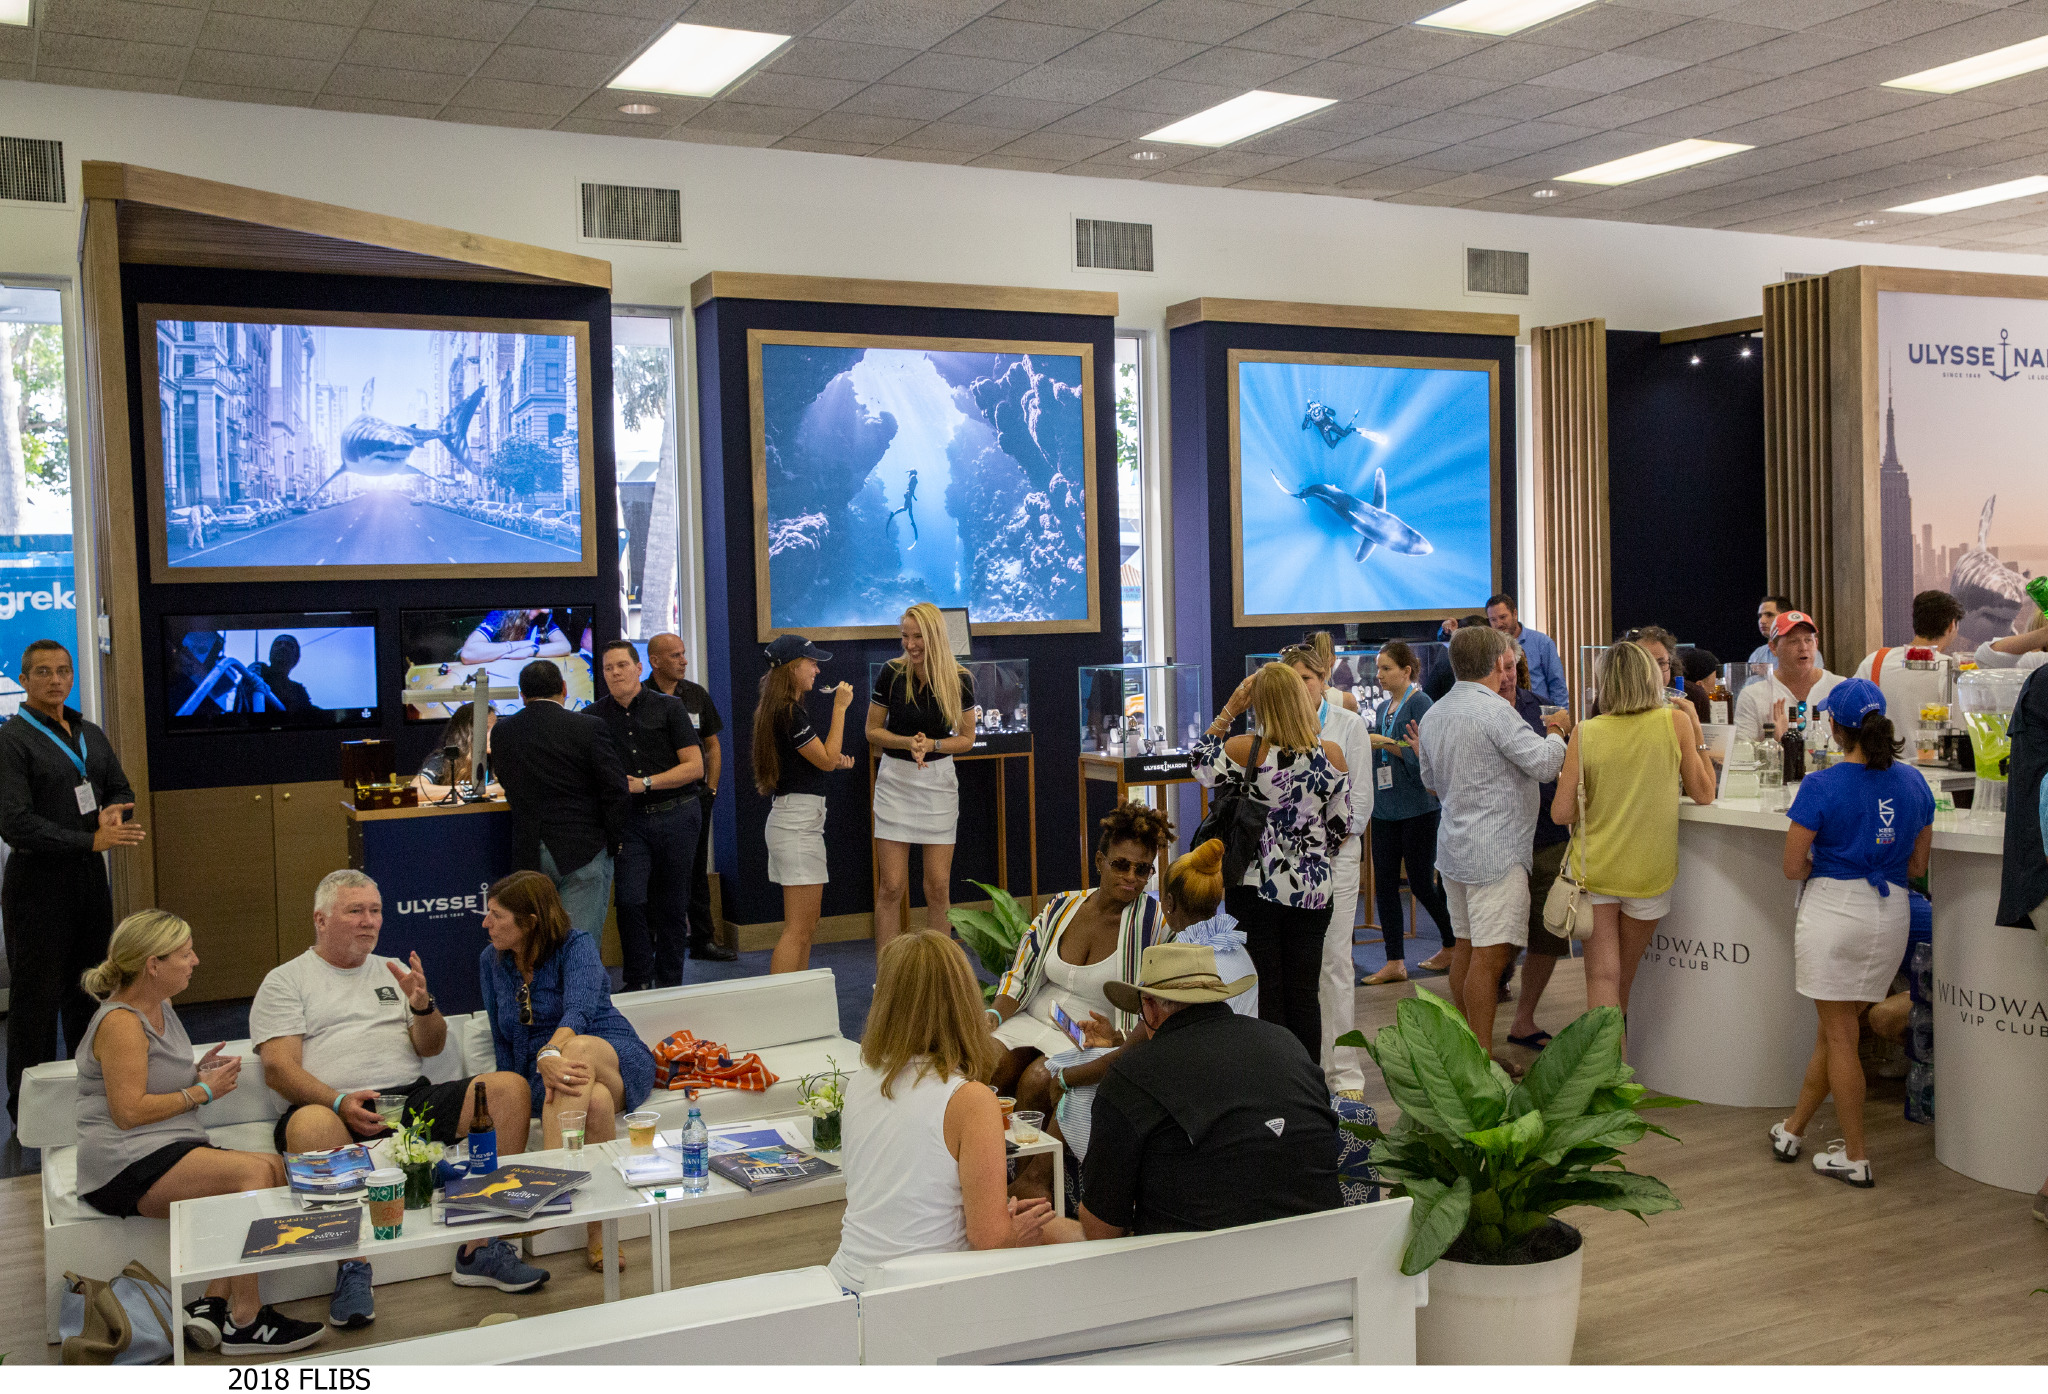 windward VIP lounge 2019 - the boat show